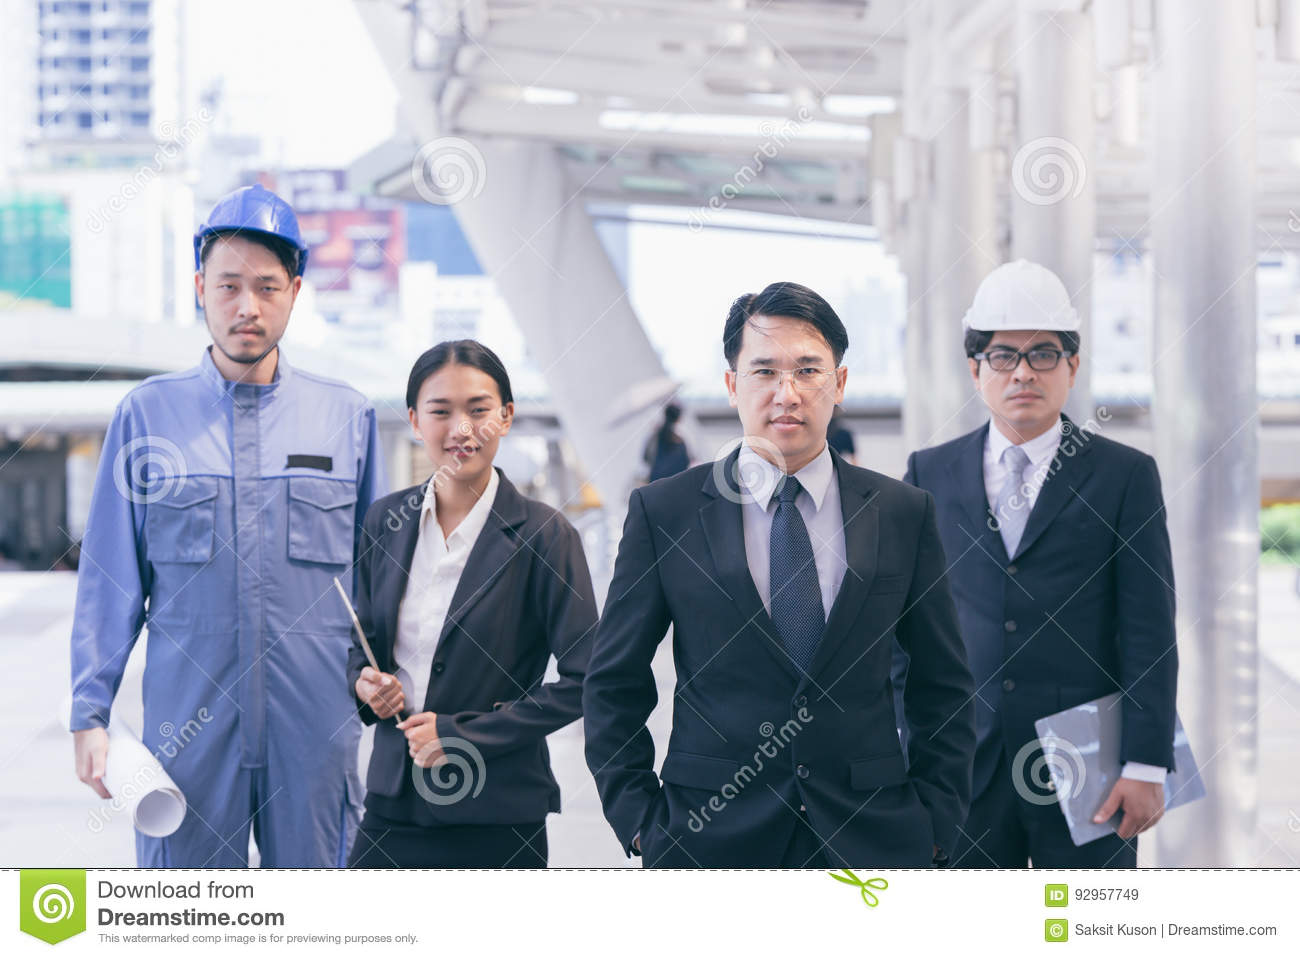 Business people group and Team management consulting with construction engineer architect and secretary working with safety hat